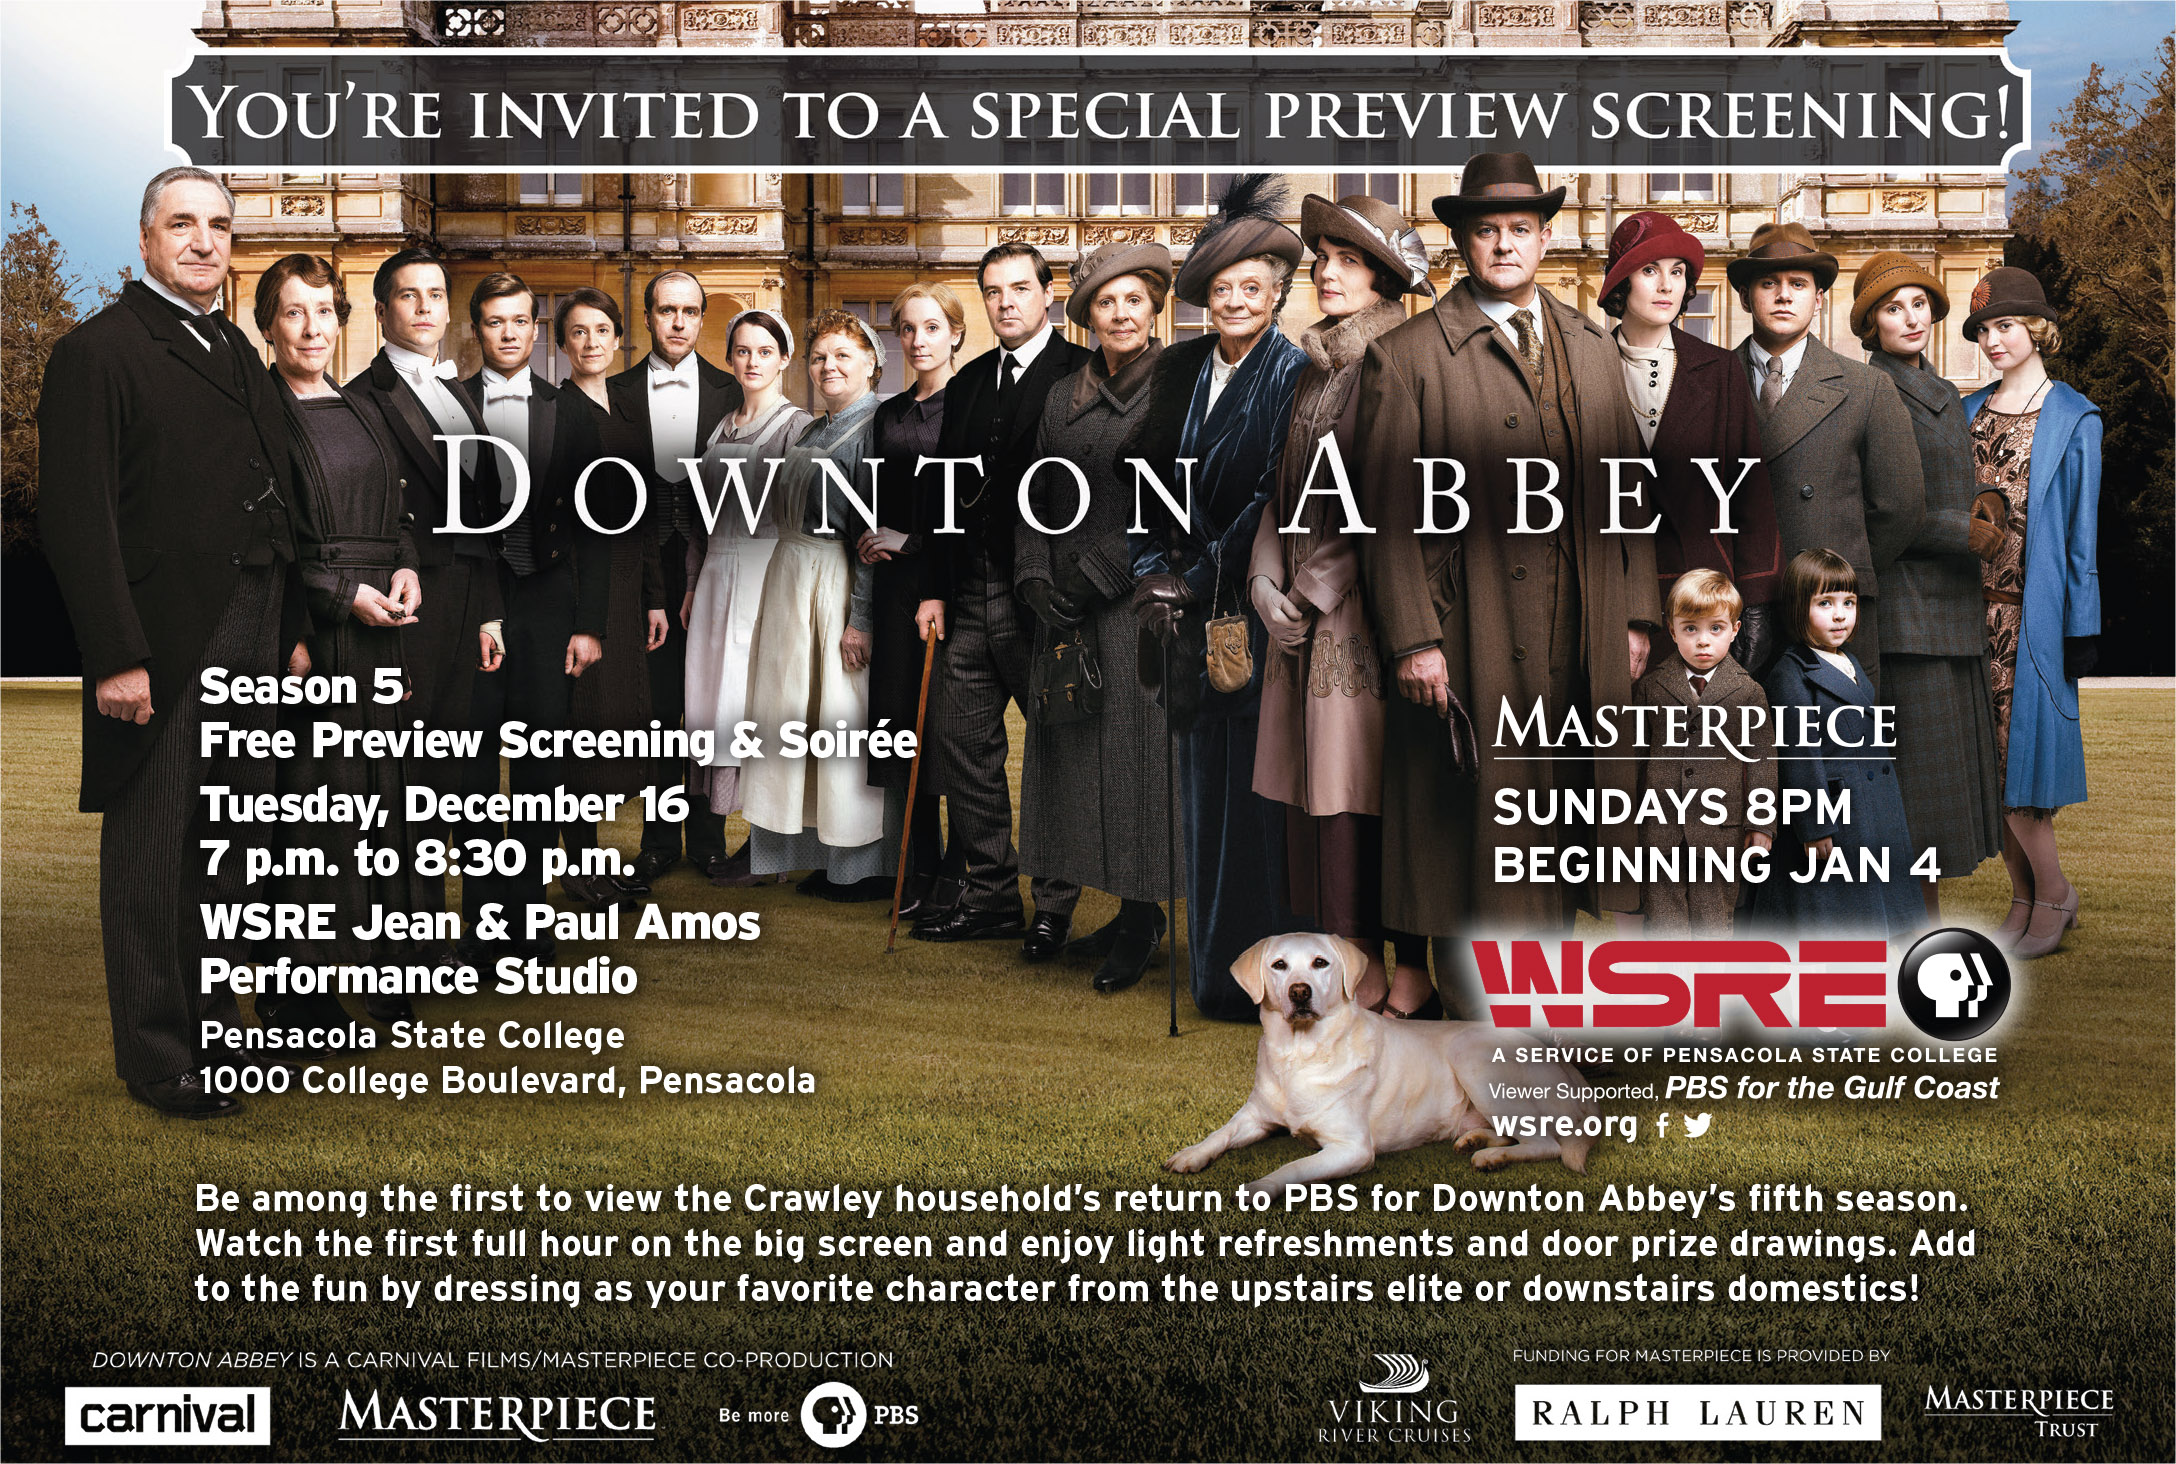 Downton abbey season 5 preview events wsre for Downton abbey tour tickets